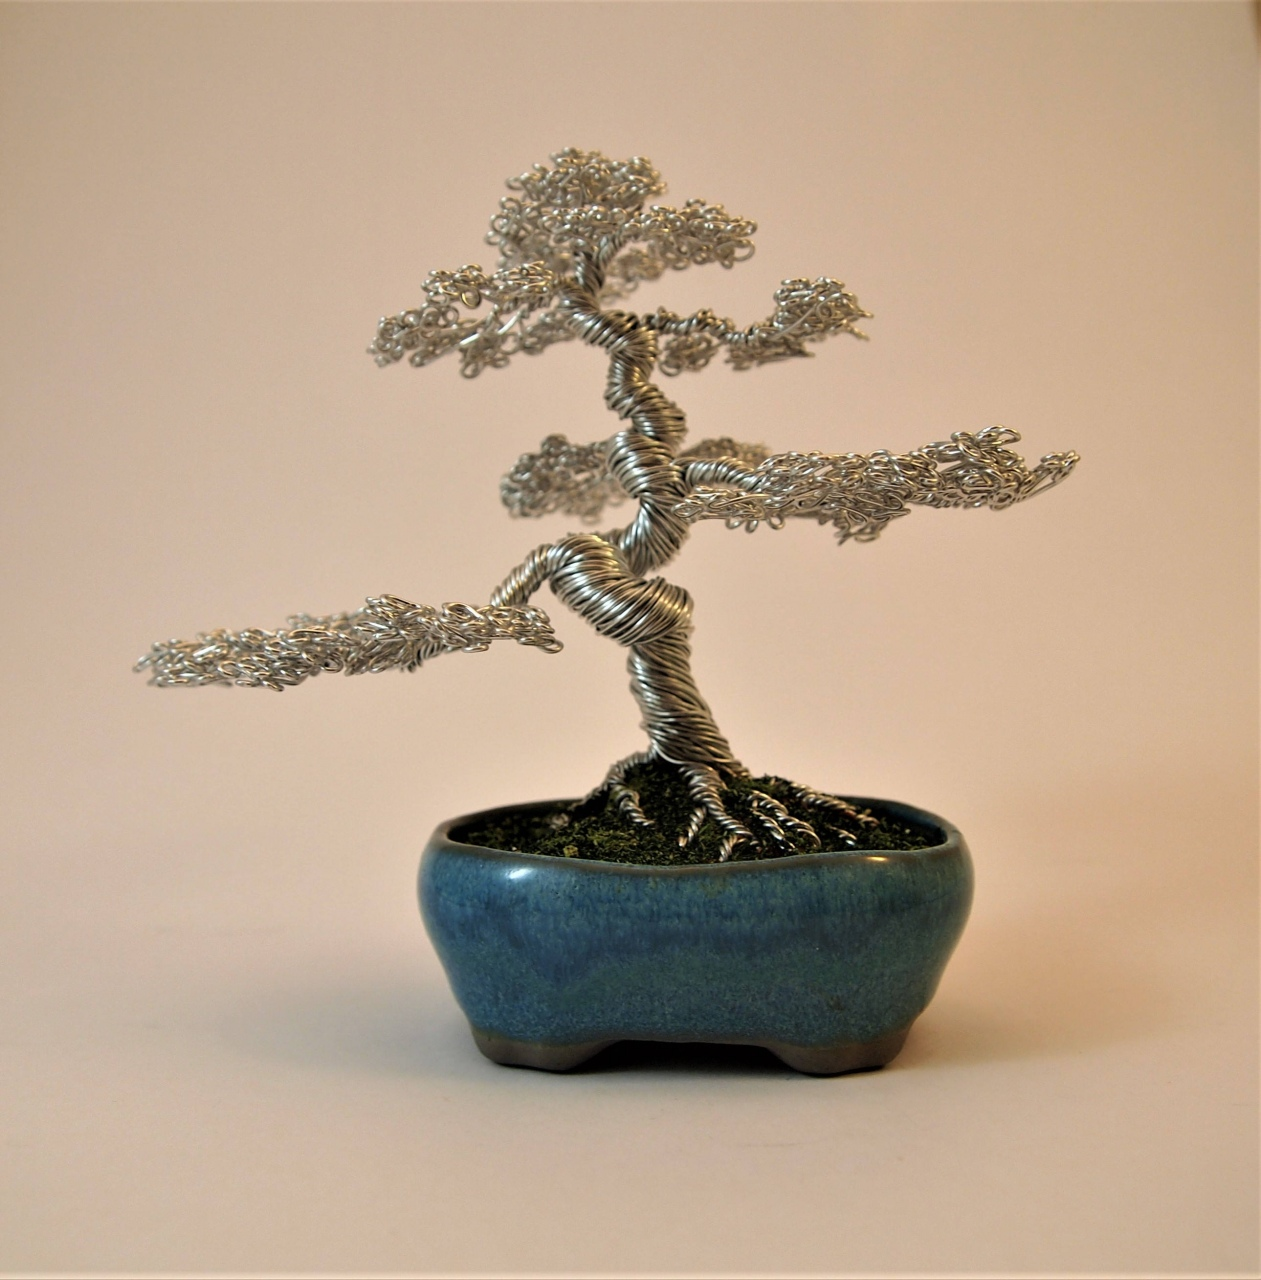 Incredible How To Make Wire Bonsai Tree Sculpture Lorenzo Sculptures Wiring 101 Mecadwellnesstrialsorg